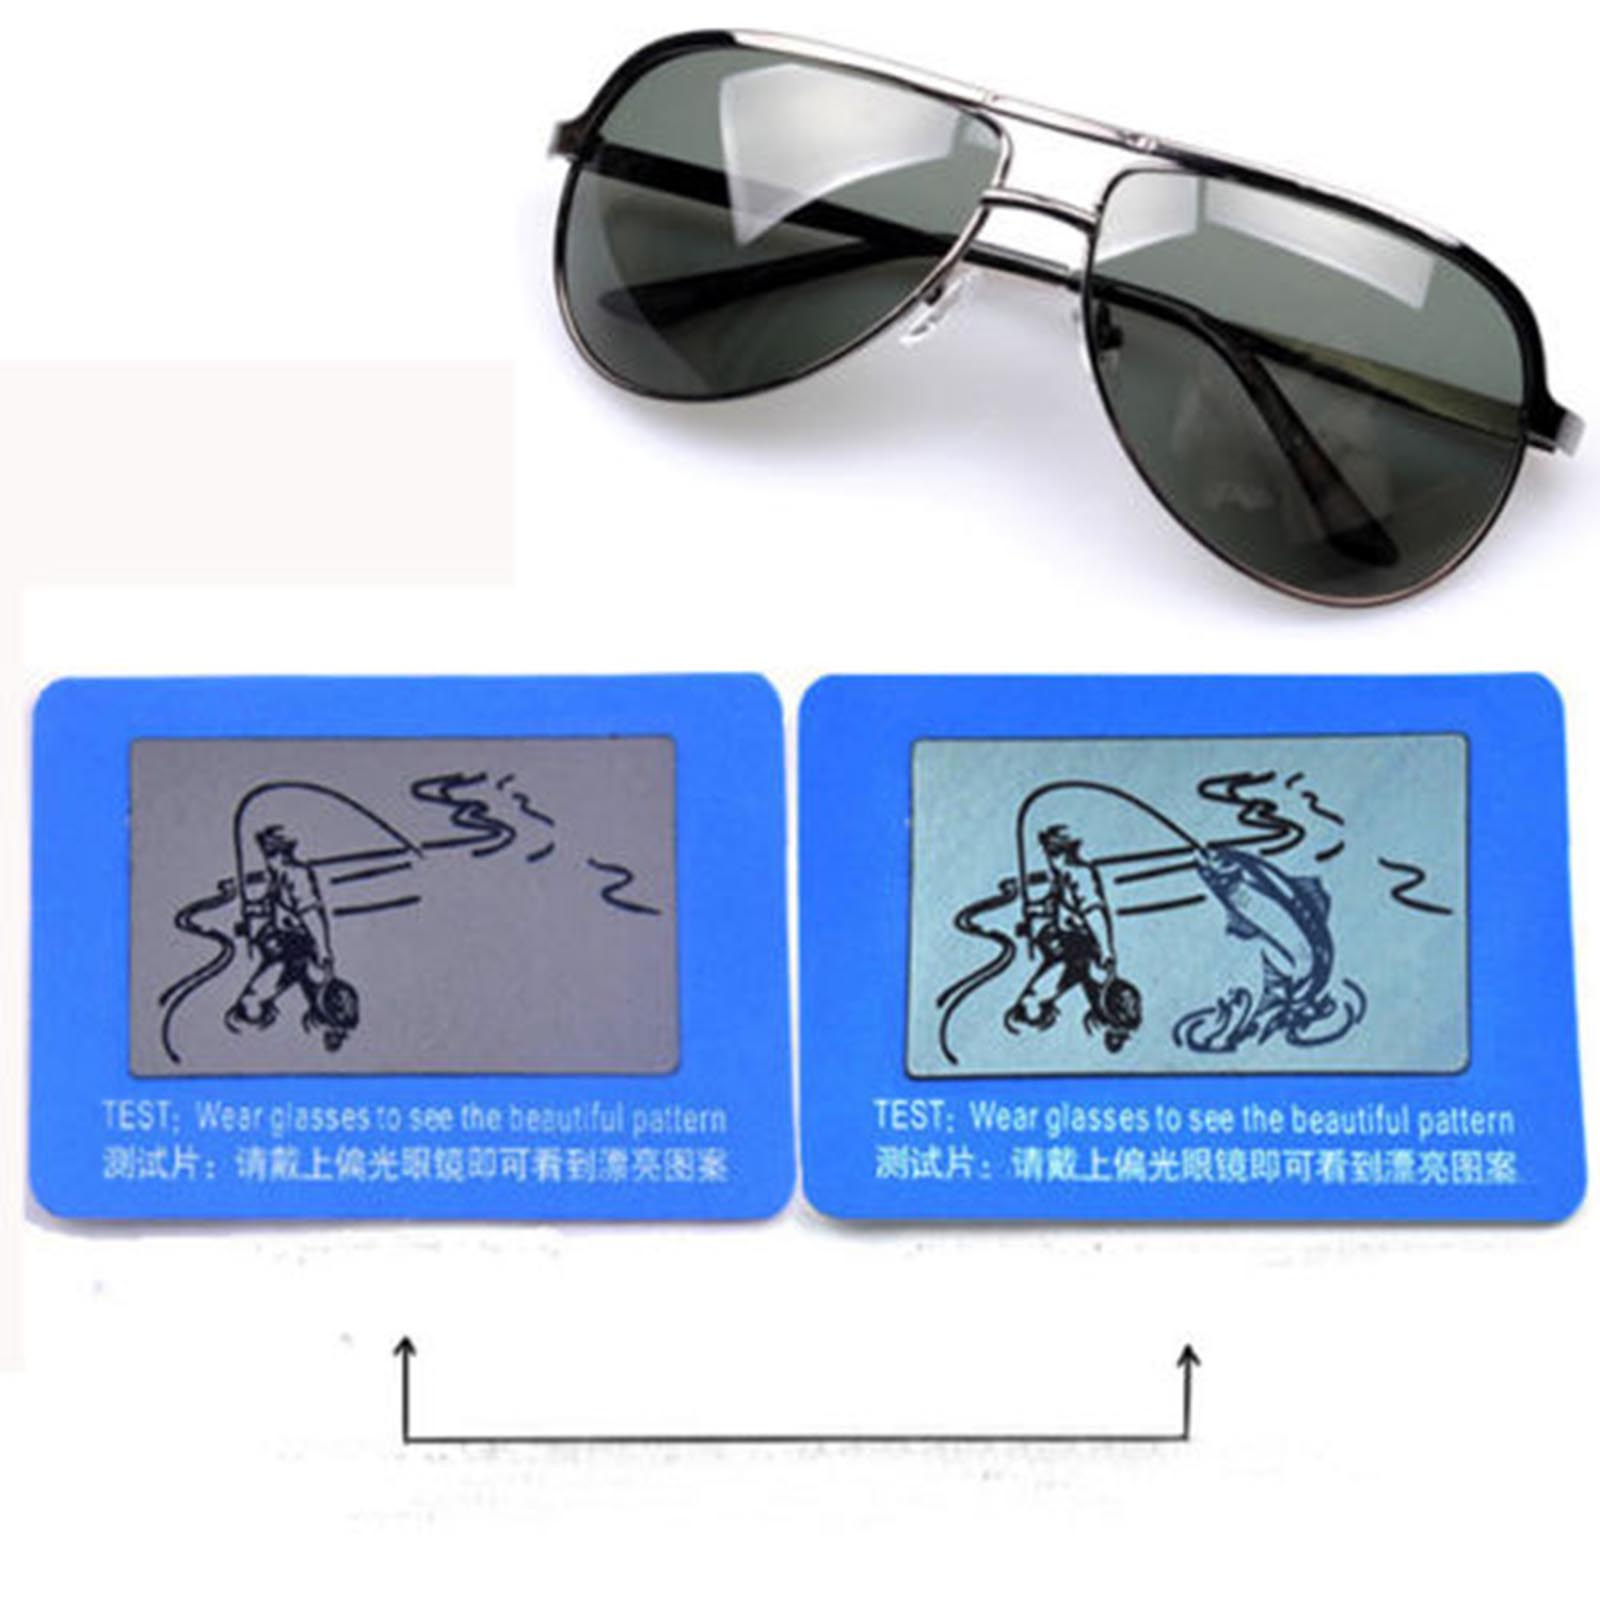 467ec459097f 10pcs pack Magical Practical Men s Women s Polarised Polarized Sunglasses  Test Card Shade-in Accessories from Apparel Accessories on Aliexpress.com  ...